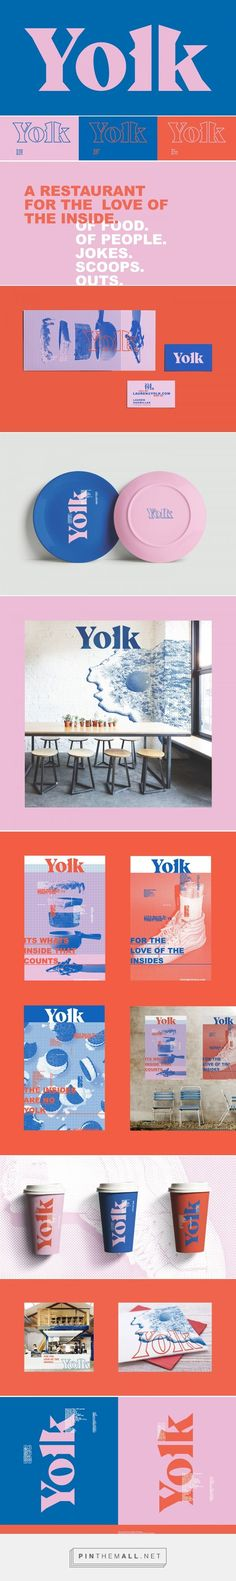 I love the colors and the font type. I also enjoy the continuation of it in all of the products/elements. Yolk Restaurant Branding by Lauren Hakmiller Branding And Packaging, Self Branding, Branding Agency, Ad Design, Design Agency, Identity Design, Brand Identity, Restaurant Branding, Product Design